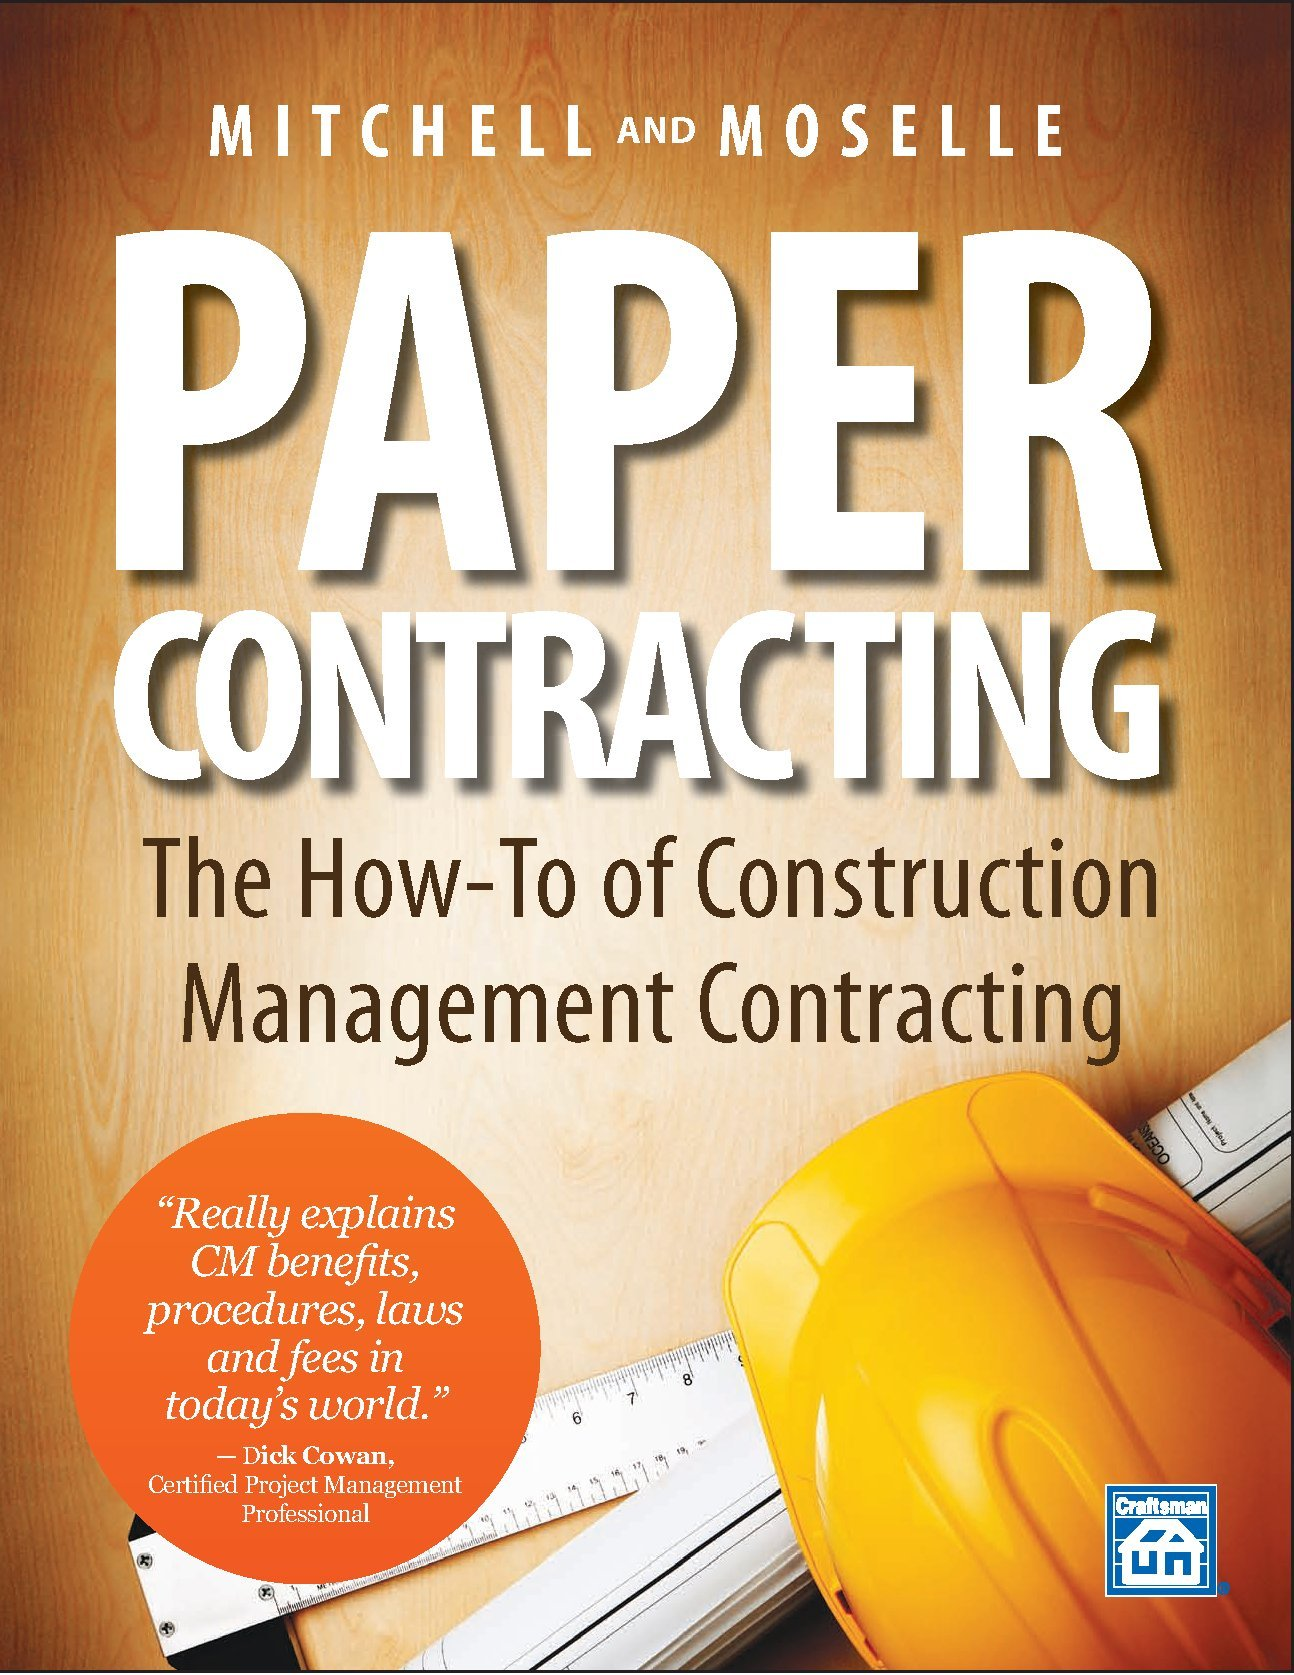 Paper Contracting: The How-To of Construction Management Contracting